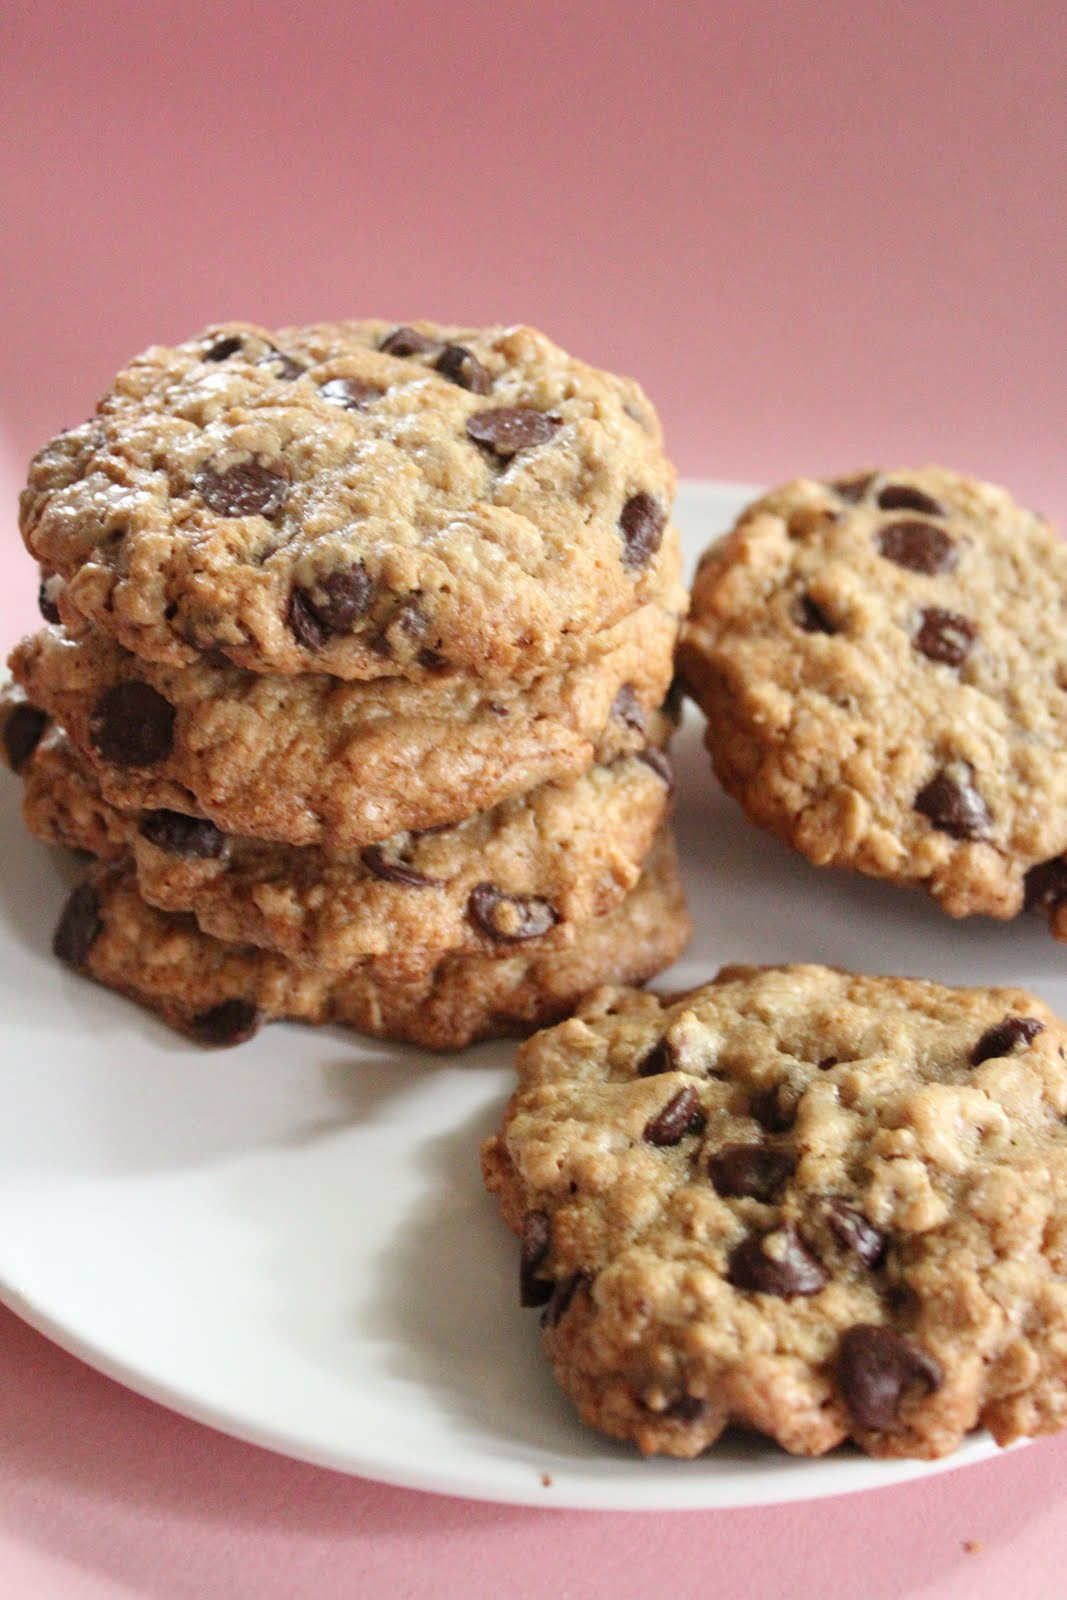 Choc Chip Oatmeal Cookies Healthy  Ultimate healthier oatmeal and chocolate chip cookies